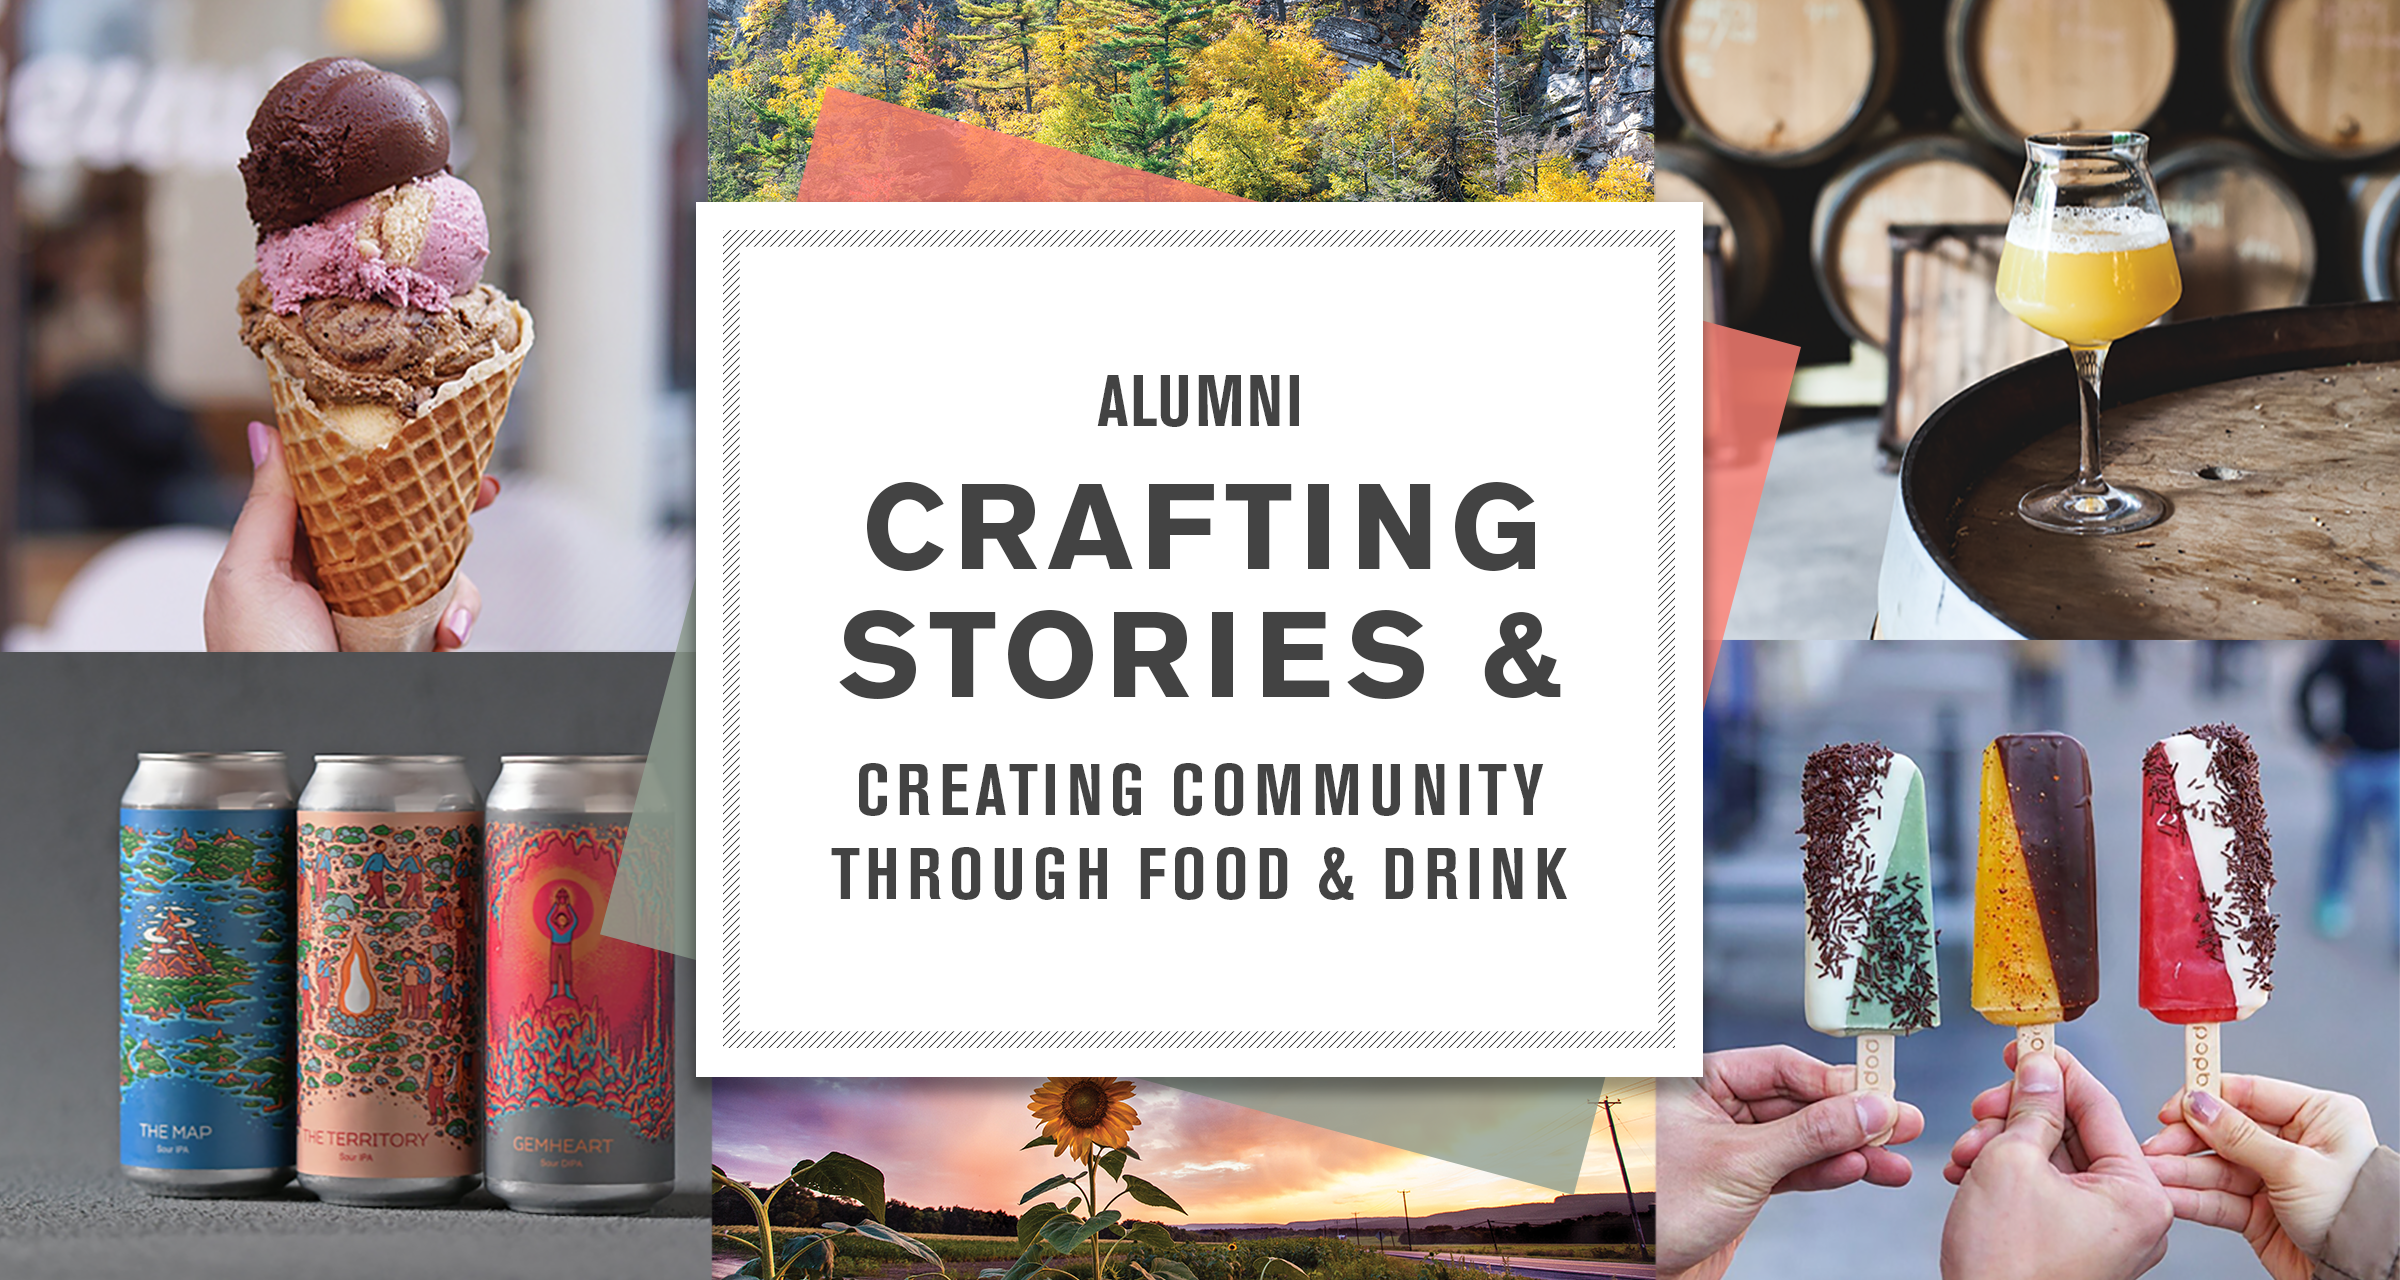 alumni crafting stories & creating community through food & drink